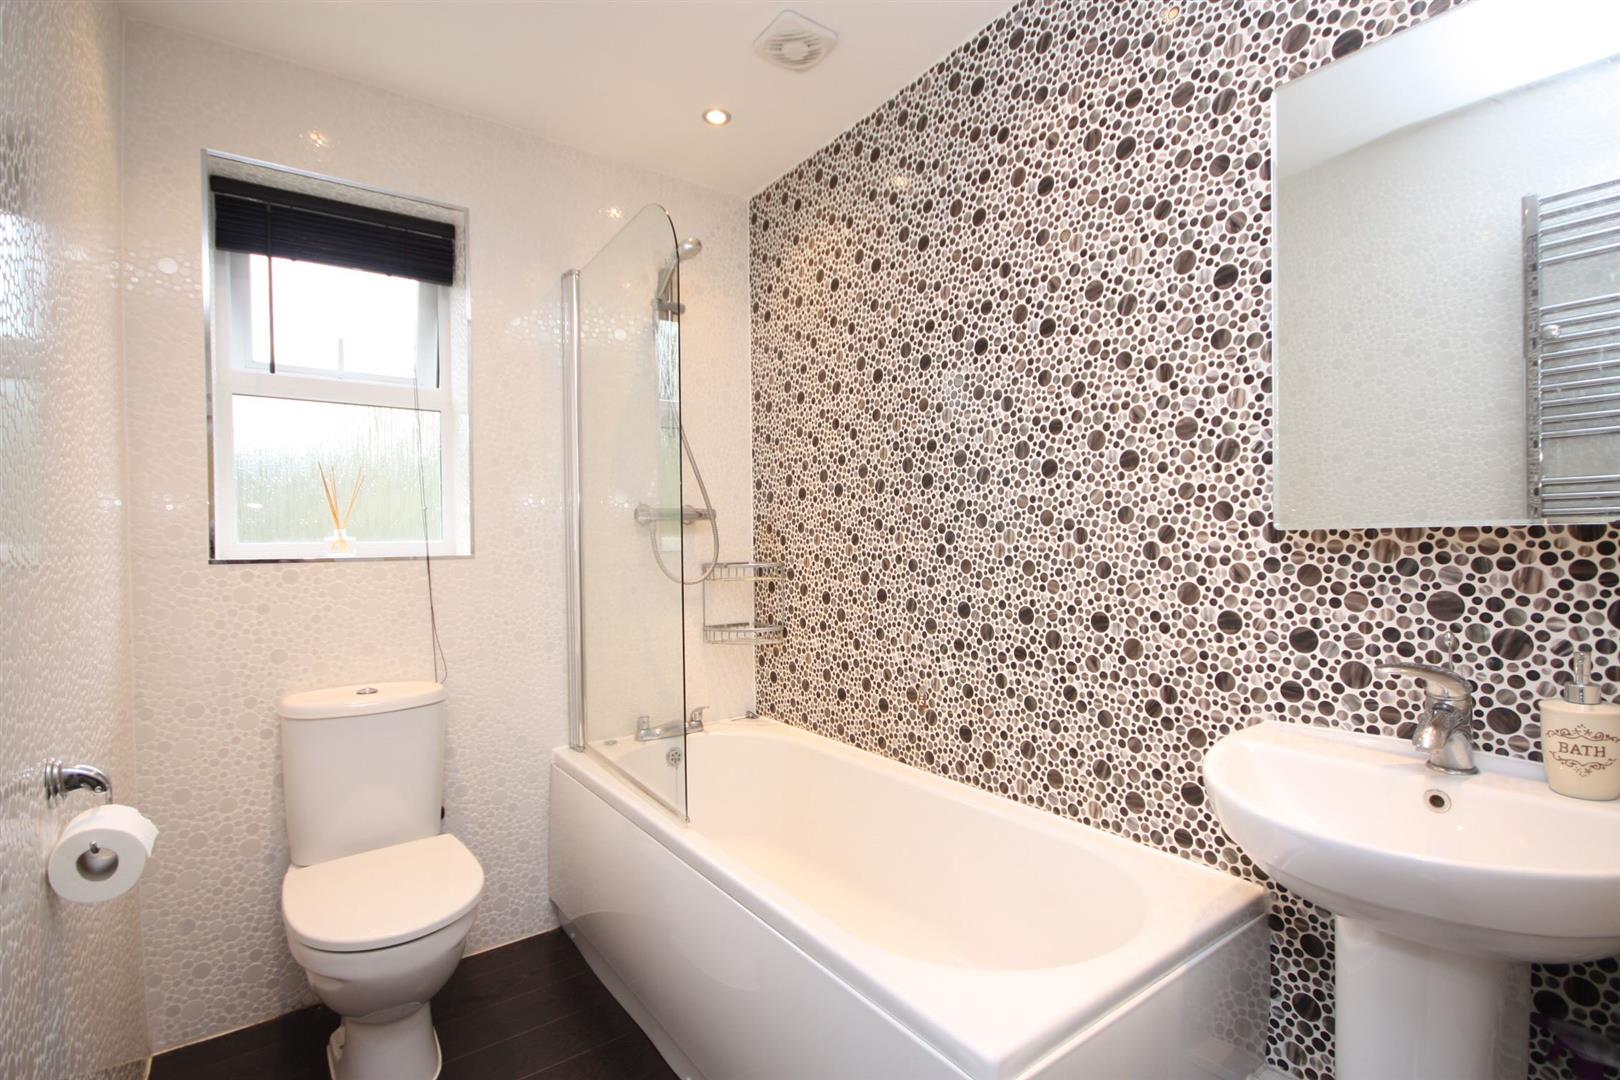 Apartment mill beck close farsley for Bathroom 3 piece suite